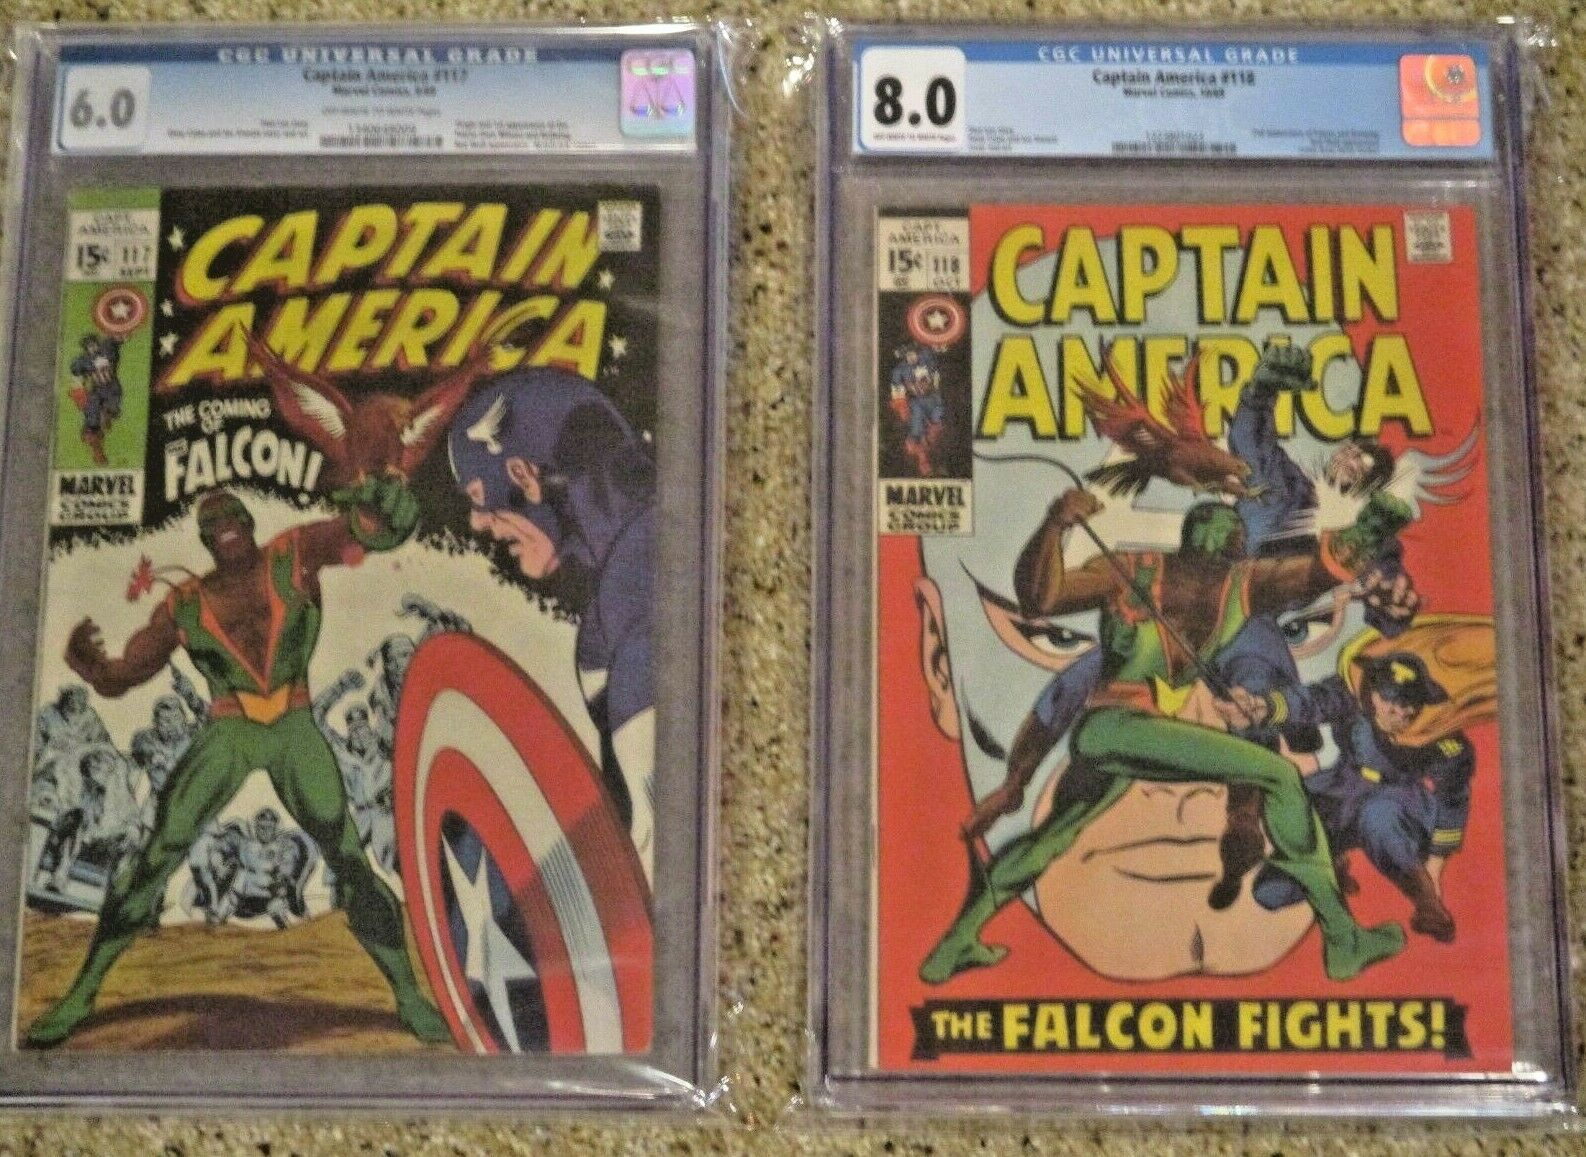 Captain America #117 & #118 - Marvel Silver Age Keys - 1st & 2nd App's Falcon